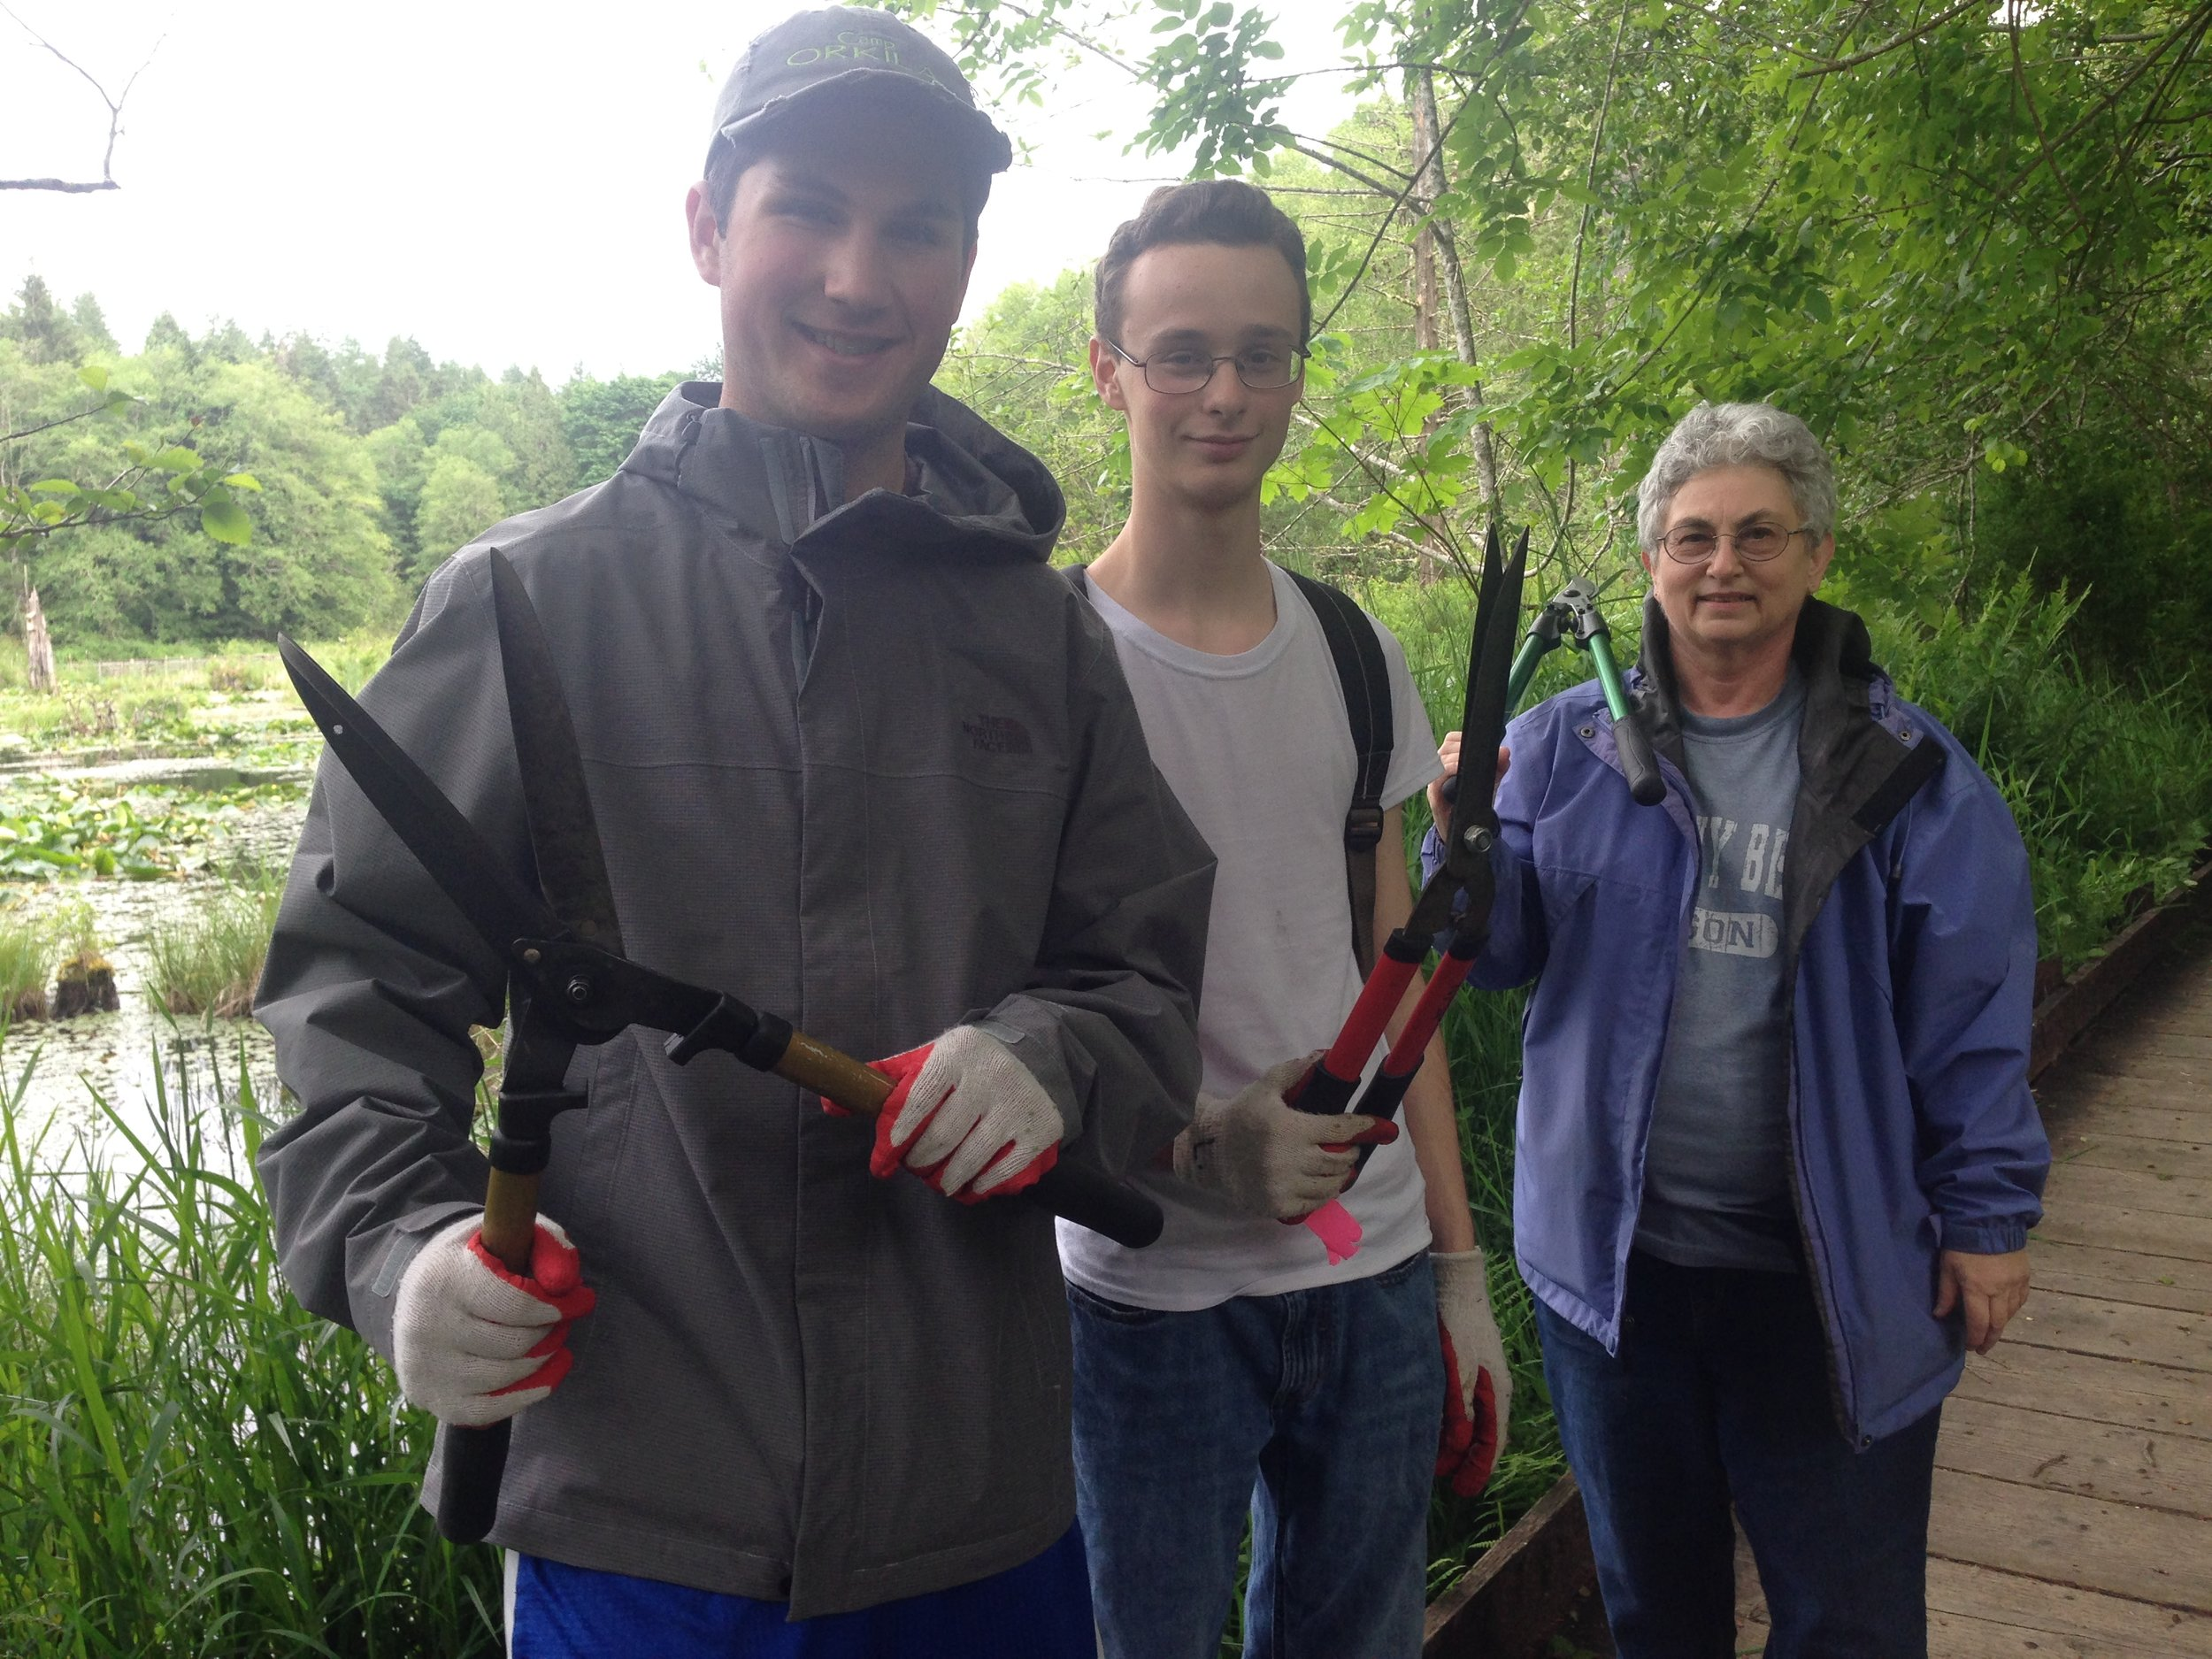 Monthly plant walks native plant salvage foundation for Fred meyer fishing license